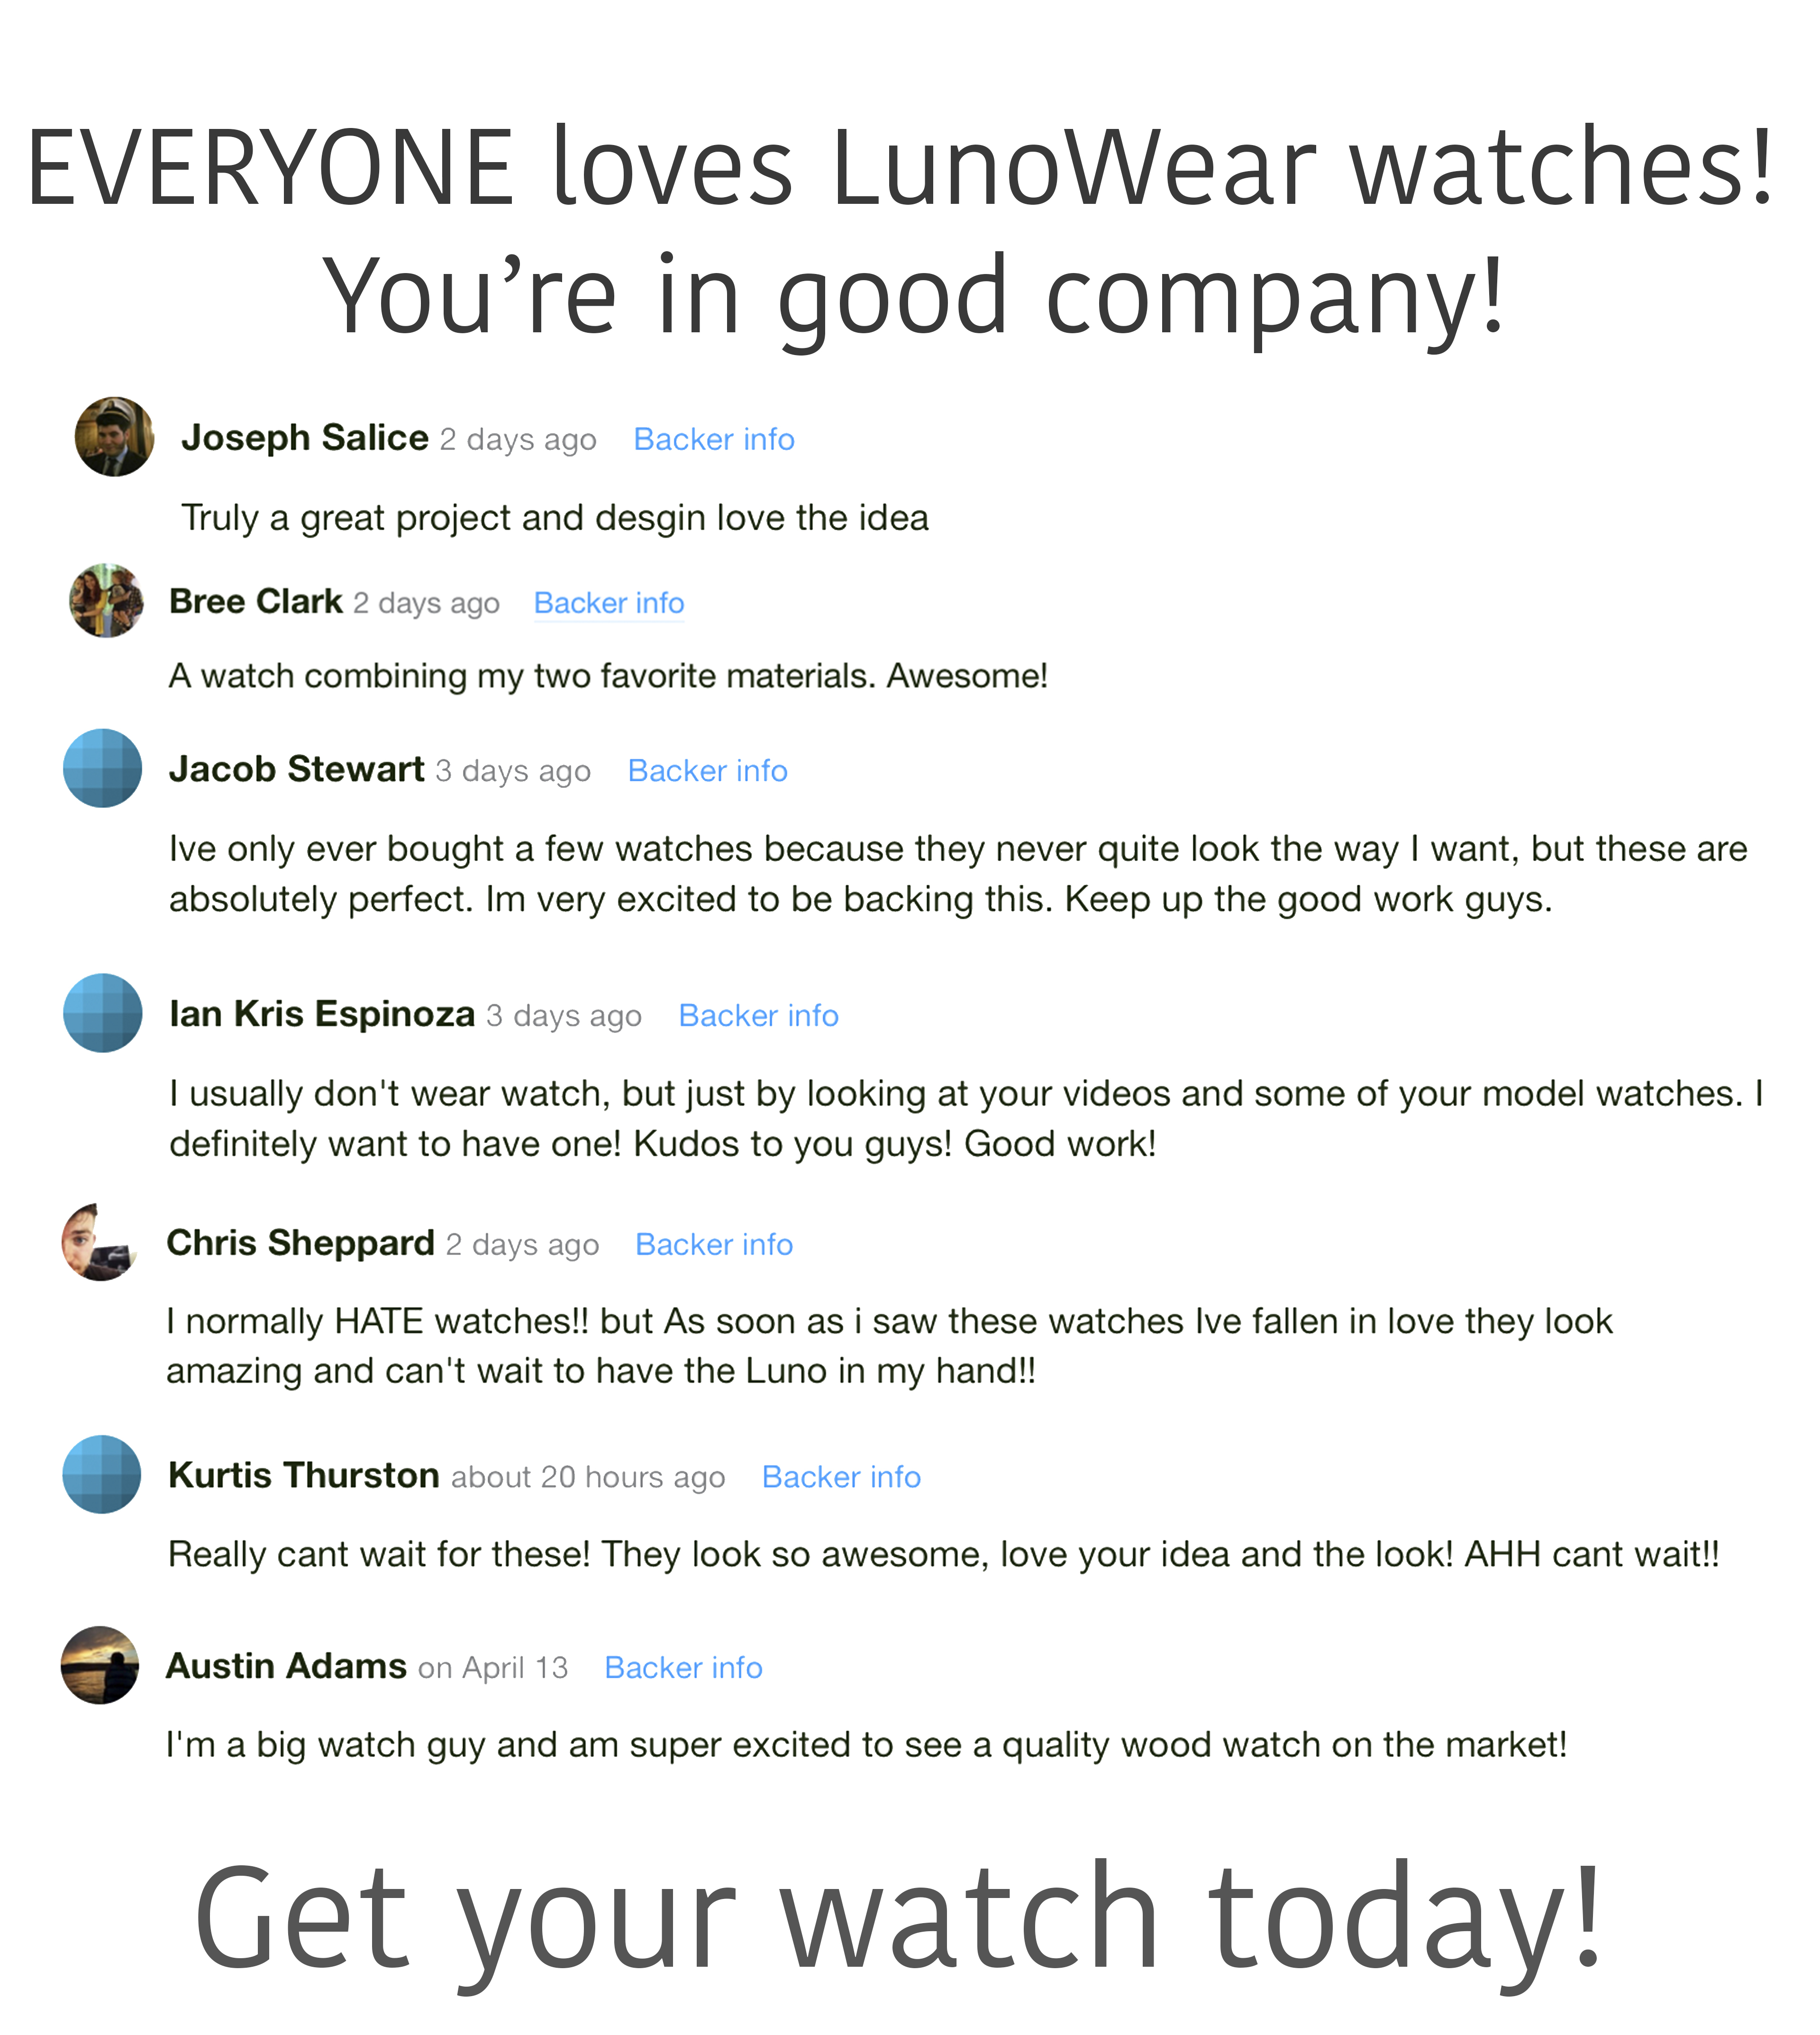 All Natural Wood And Leather Watches | Indiegogo